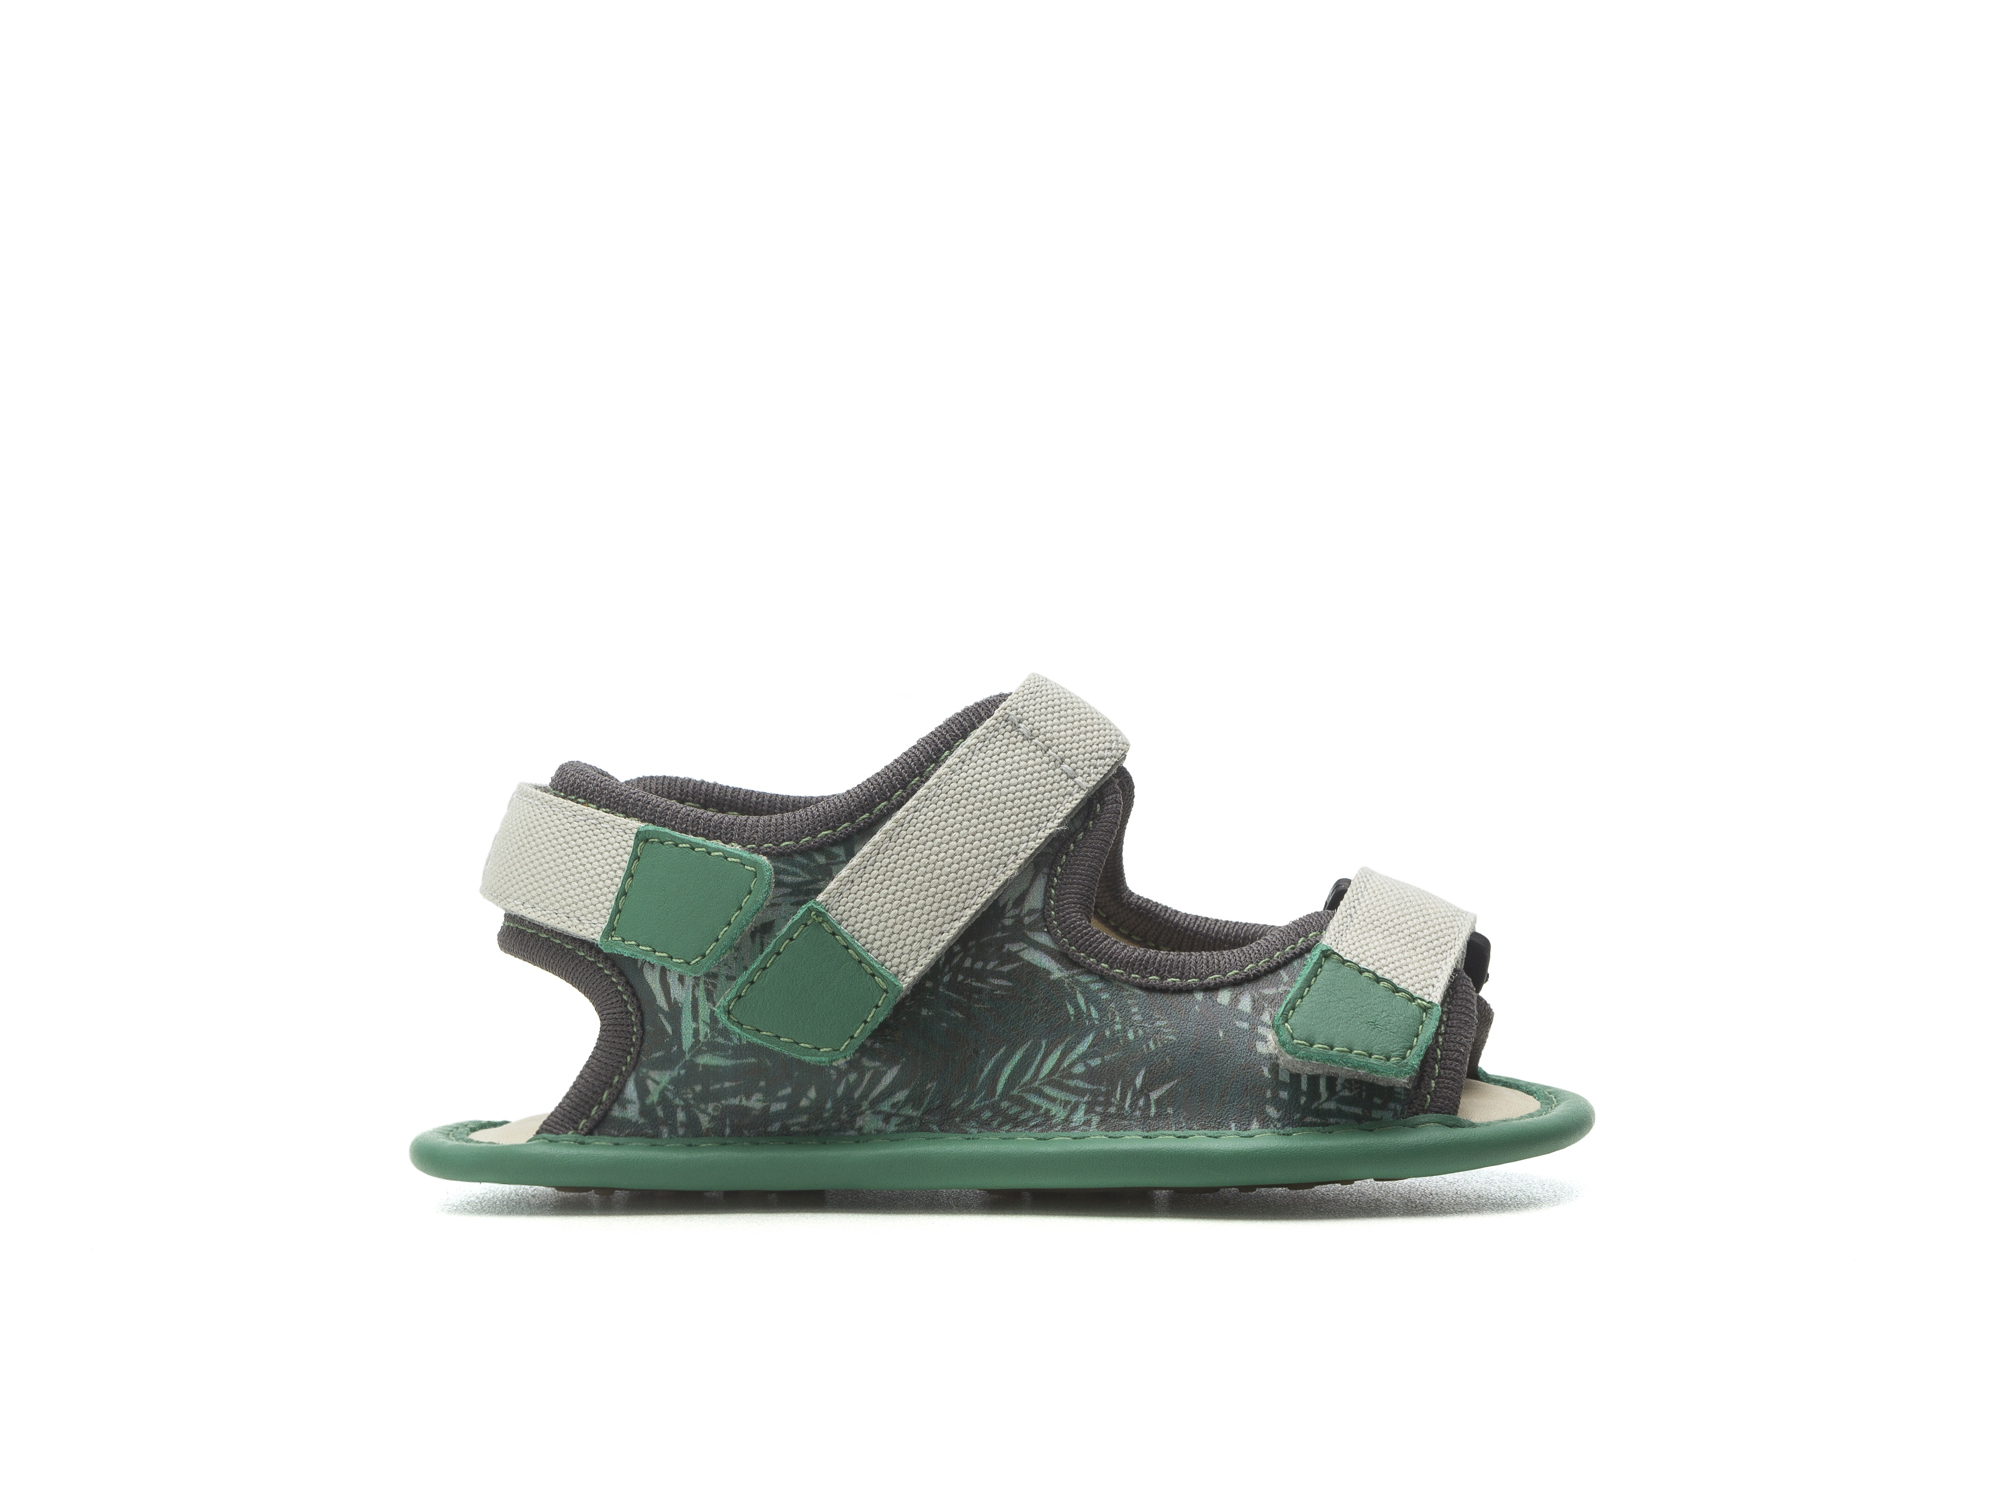 Sandal Boardy Green Palm/ Green Leaf Baby for ages 0 to 2 years - 1